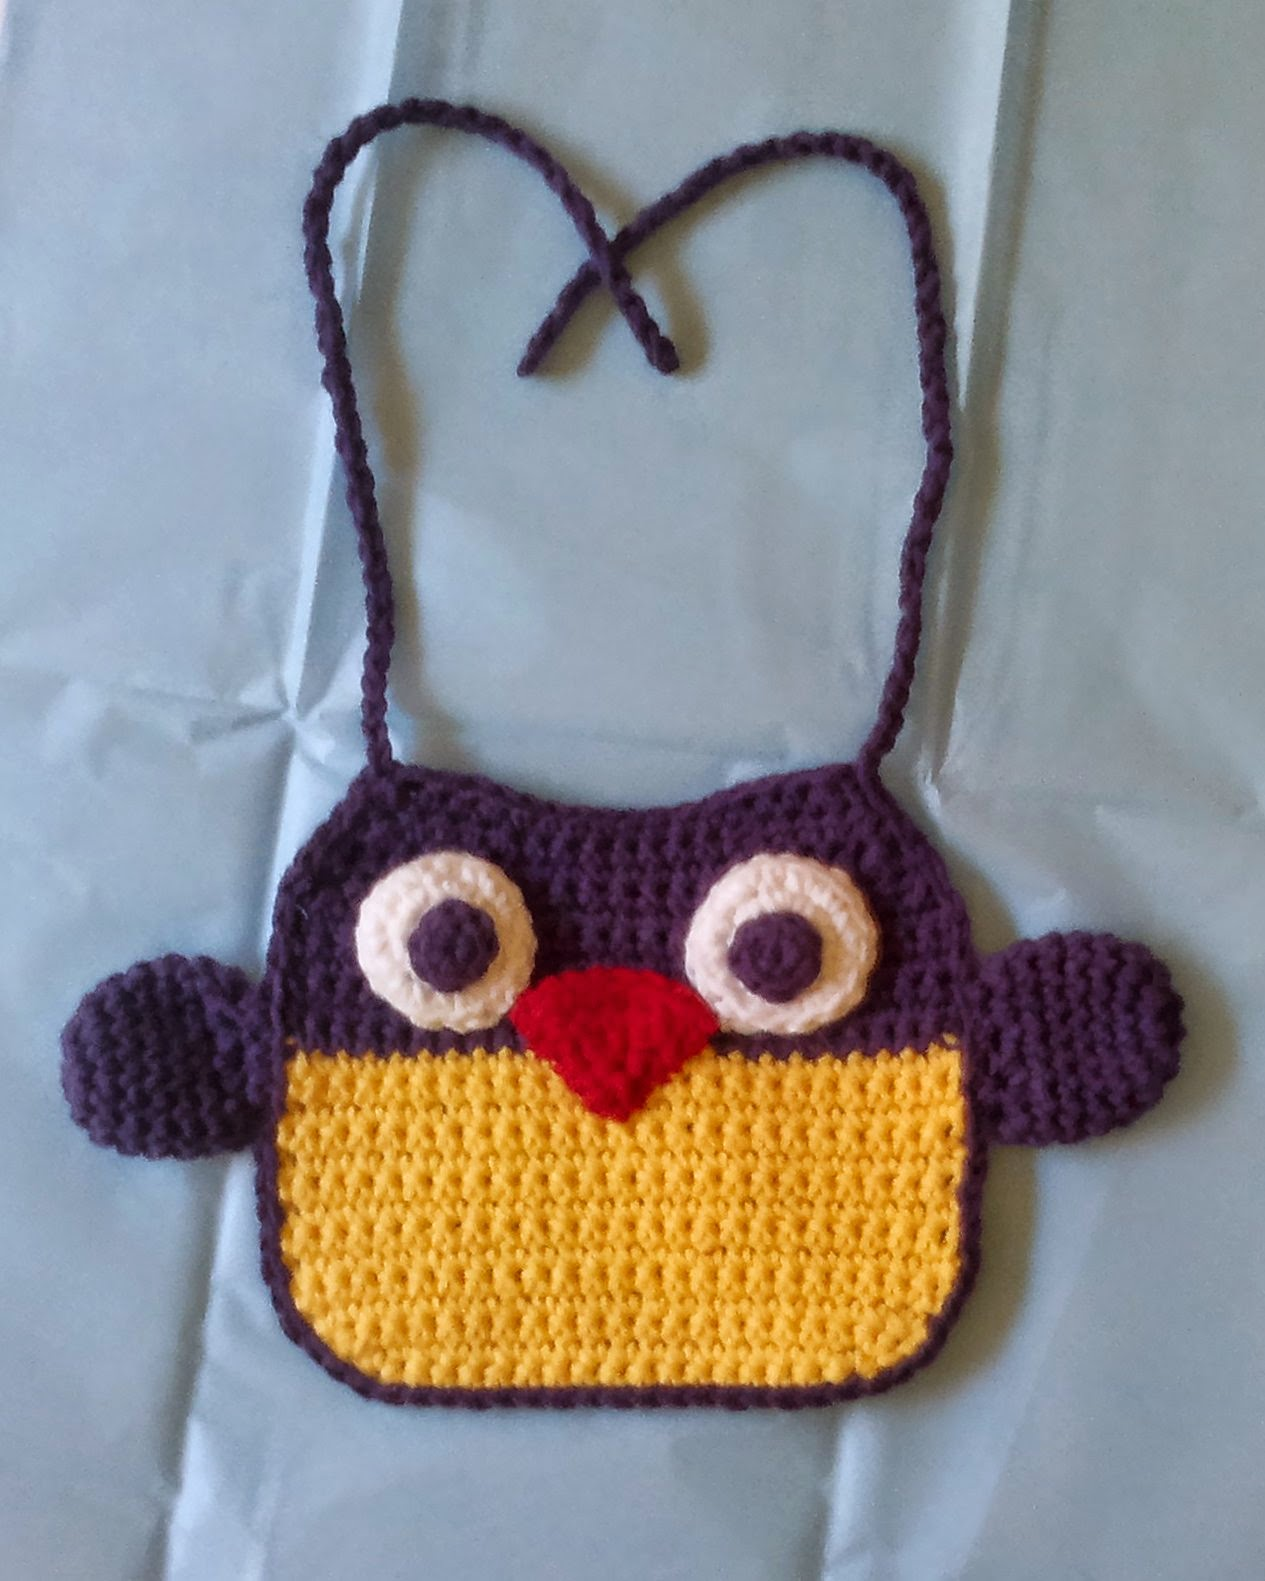 Crocheted owl bib laid out on two layers of wrapping paper.